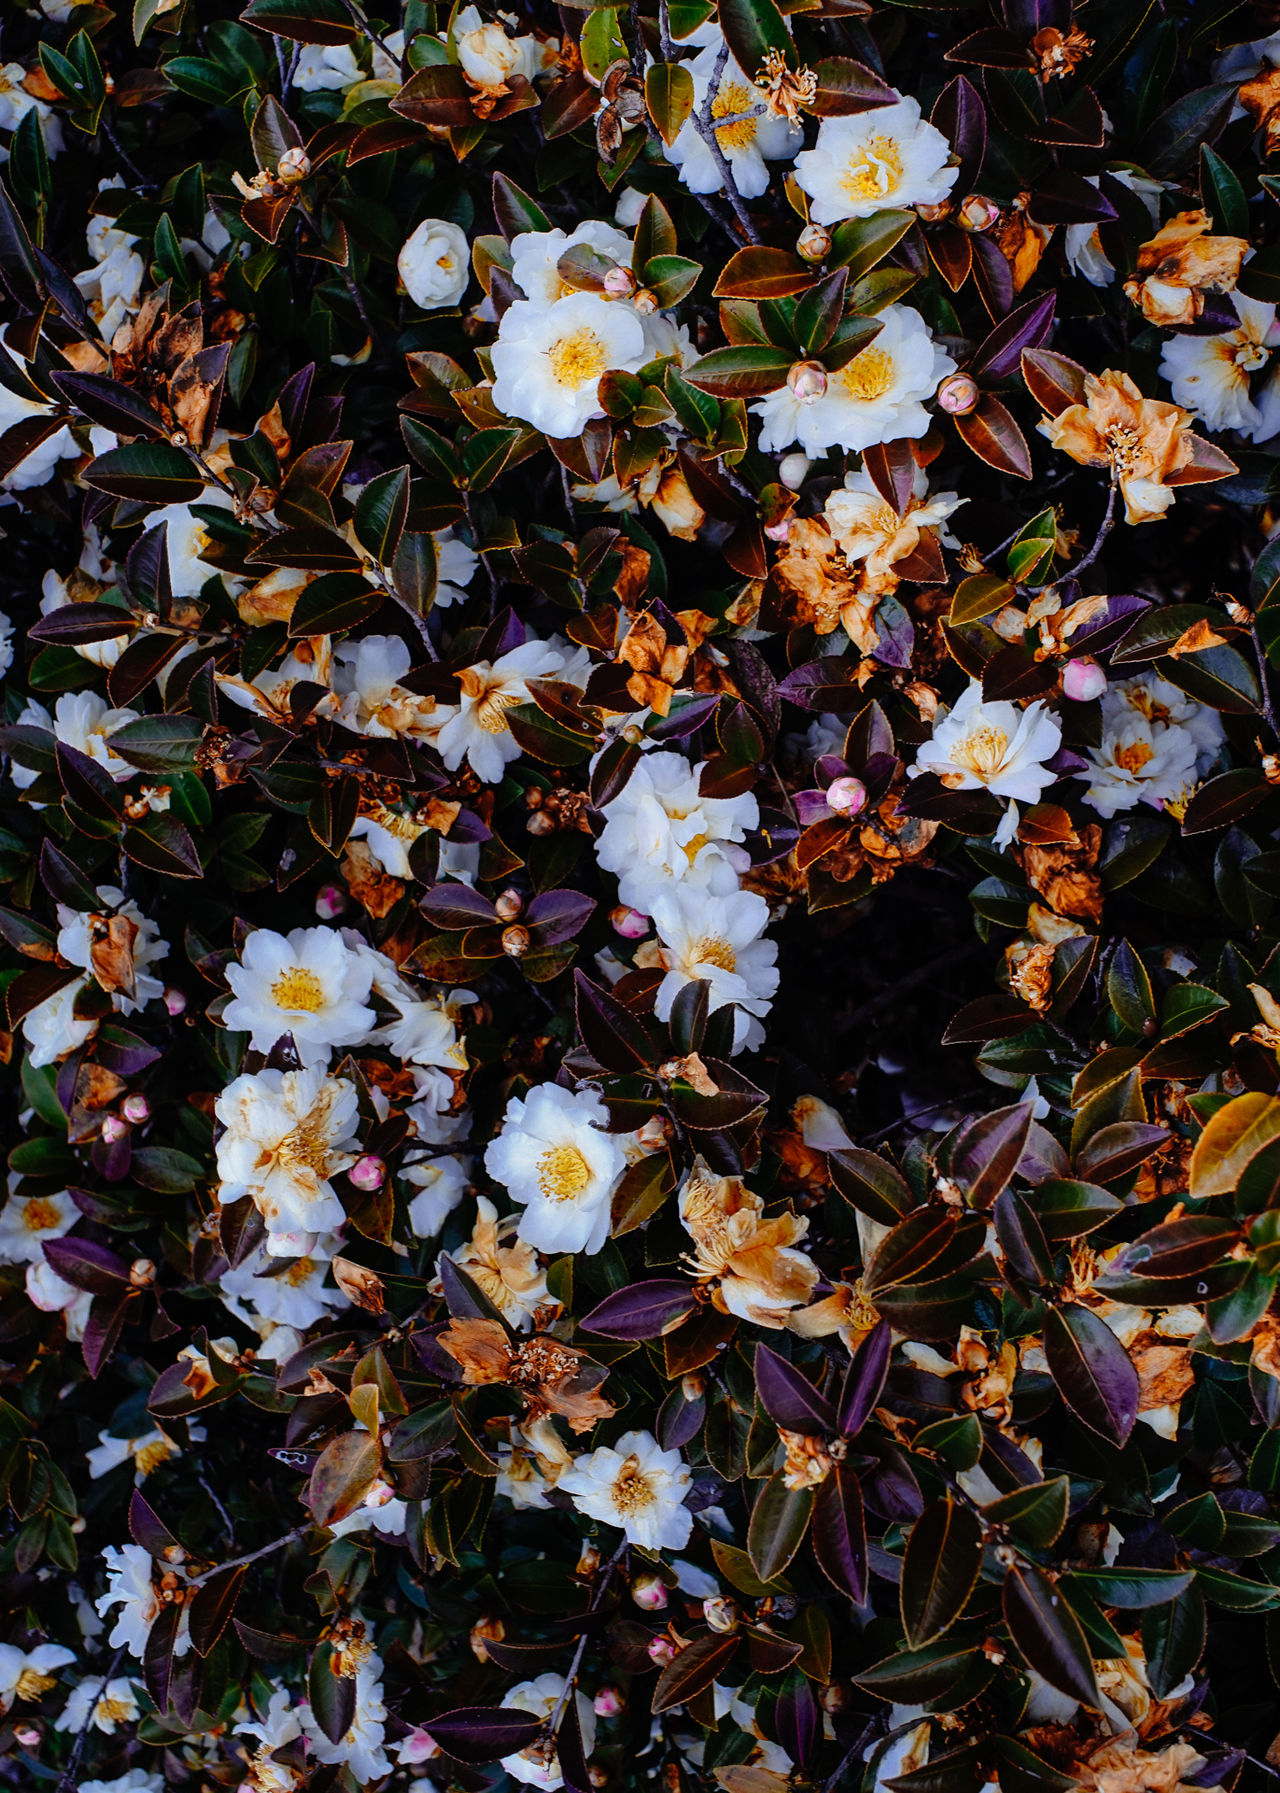 at winter exploration Beauty In Nature Botanical Camellia Camellia Japonica Close-up Decay EyeEm Best Edits EyeEm Nature Lover Flower Head Fragility Japan Leaves Nature Photography Nature_collection No People Outdoors Pattern Plants And Flowers Rot Sasanqua Tranquility Winter